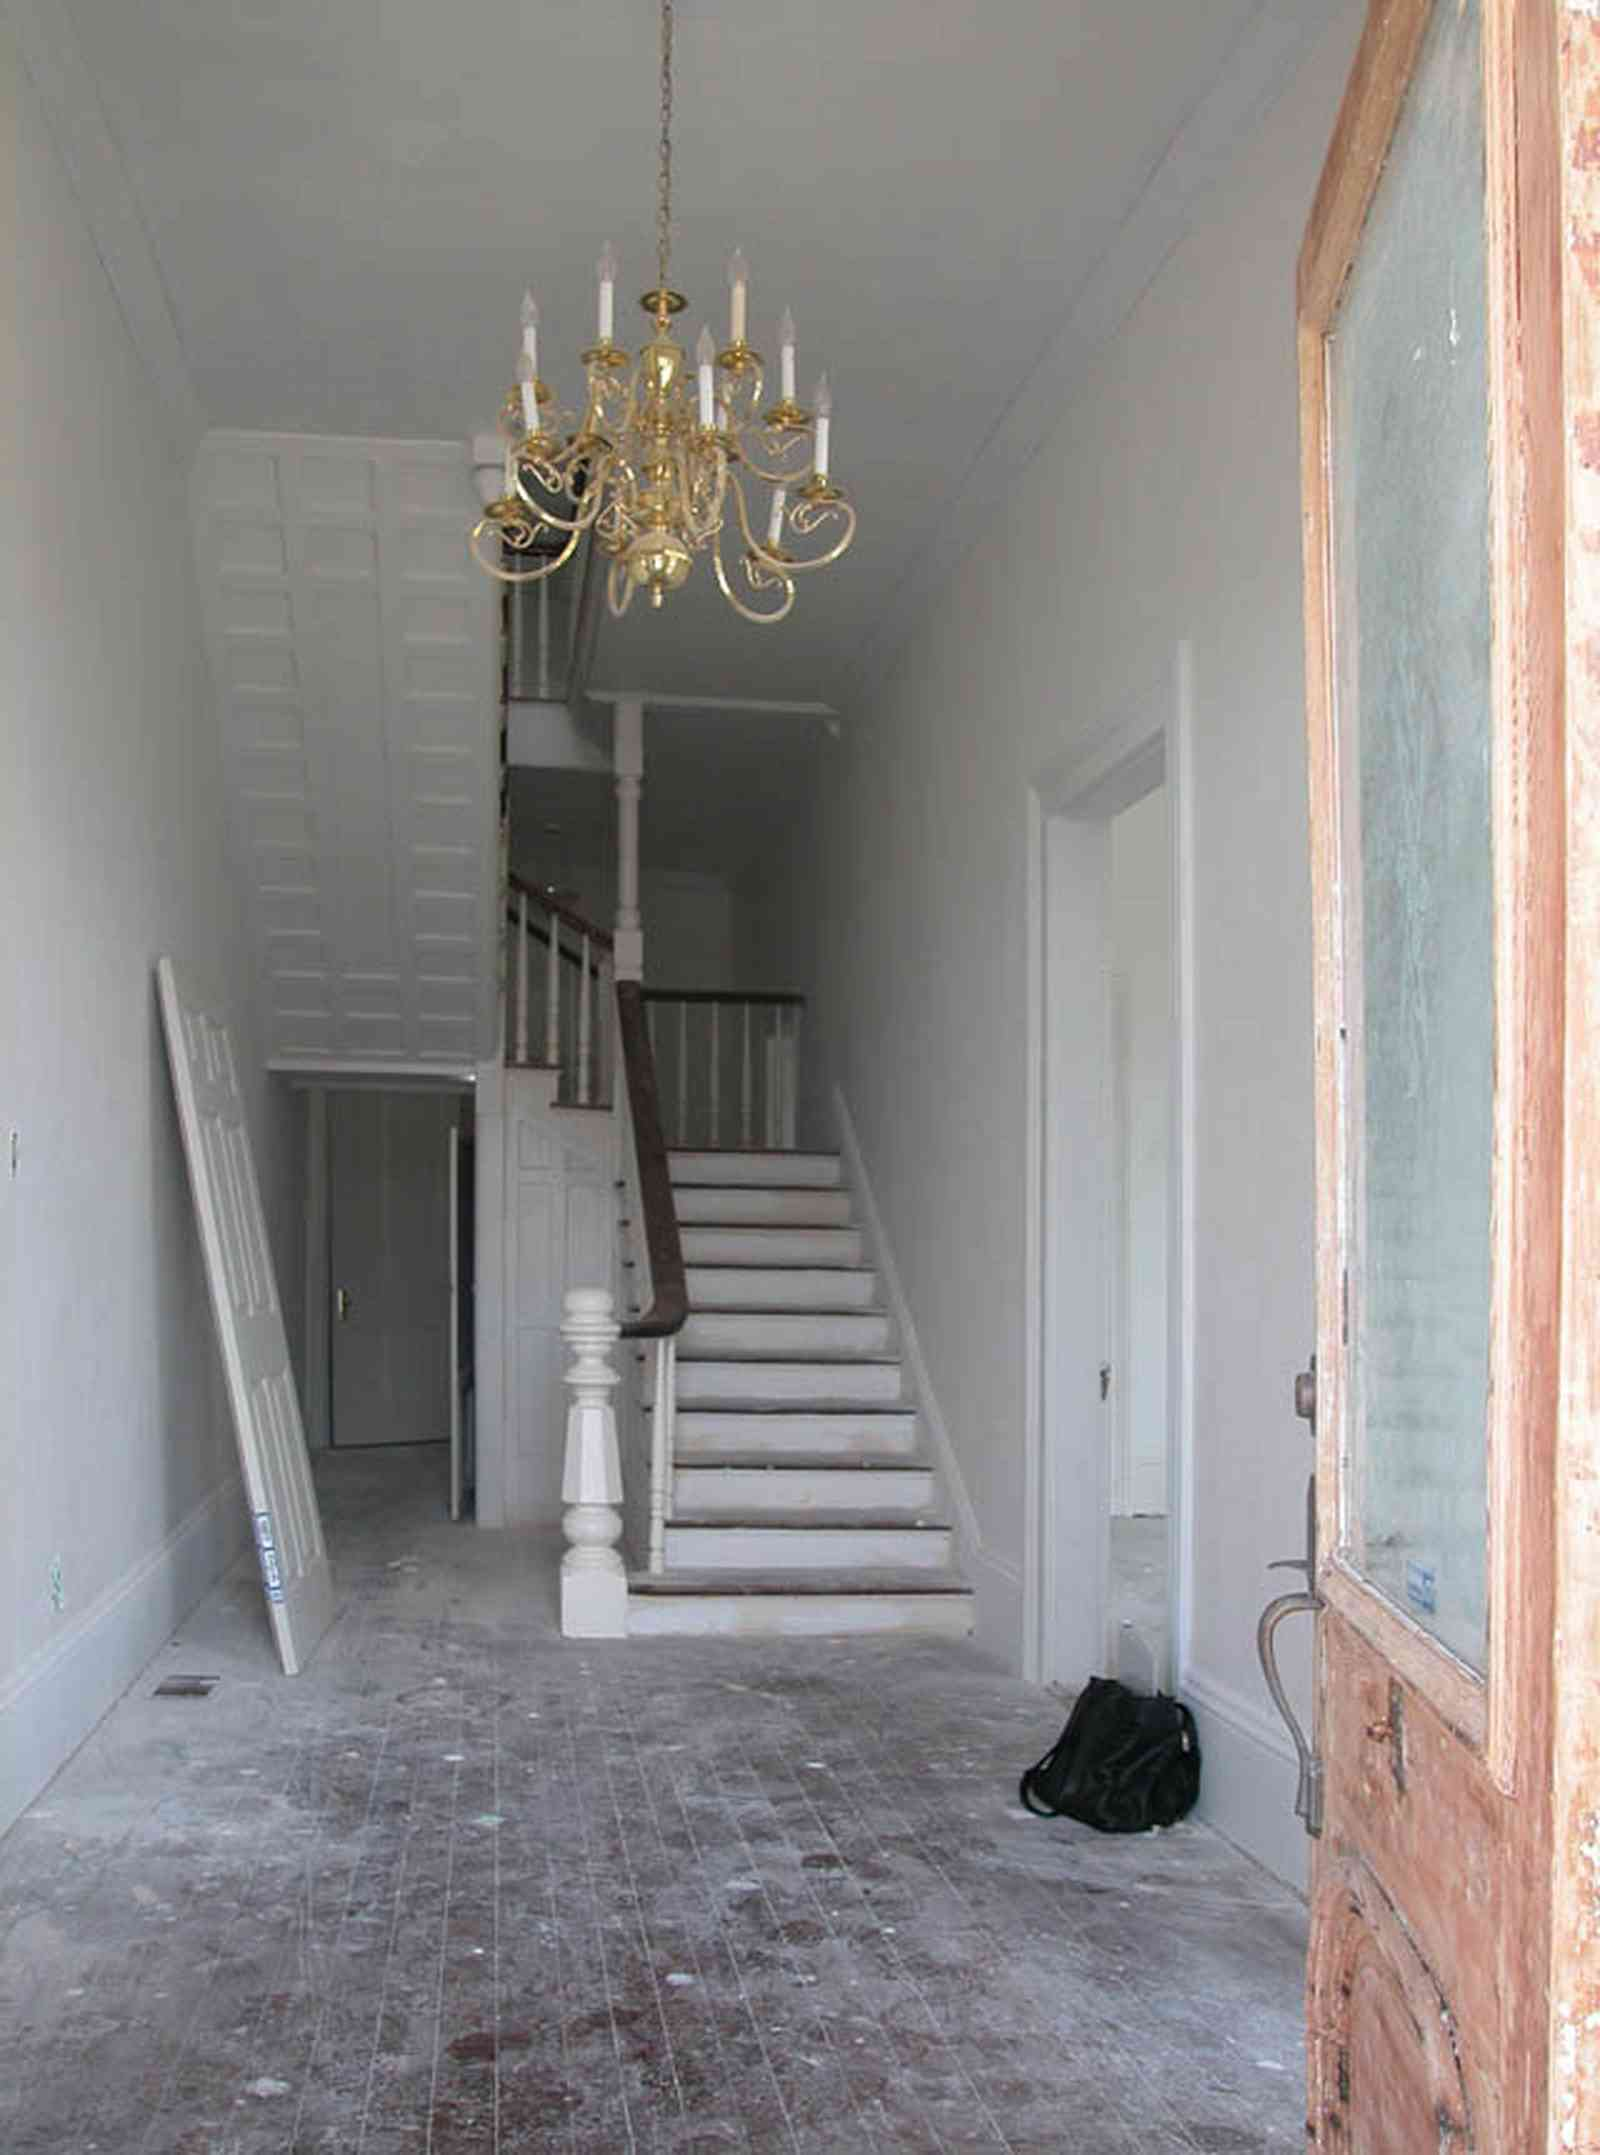 North-Hill:-200-West-Jackson-Street_02.jpg:  chandelier, heart-pine floors, etched glass door, staircase, victorian style, balloon frame construction